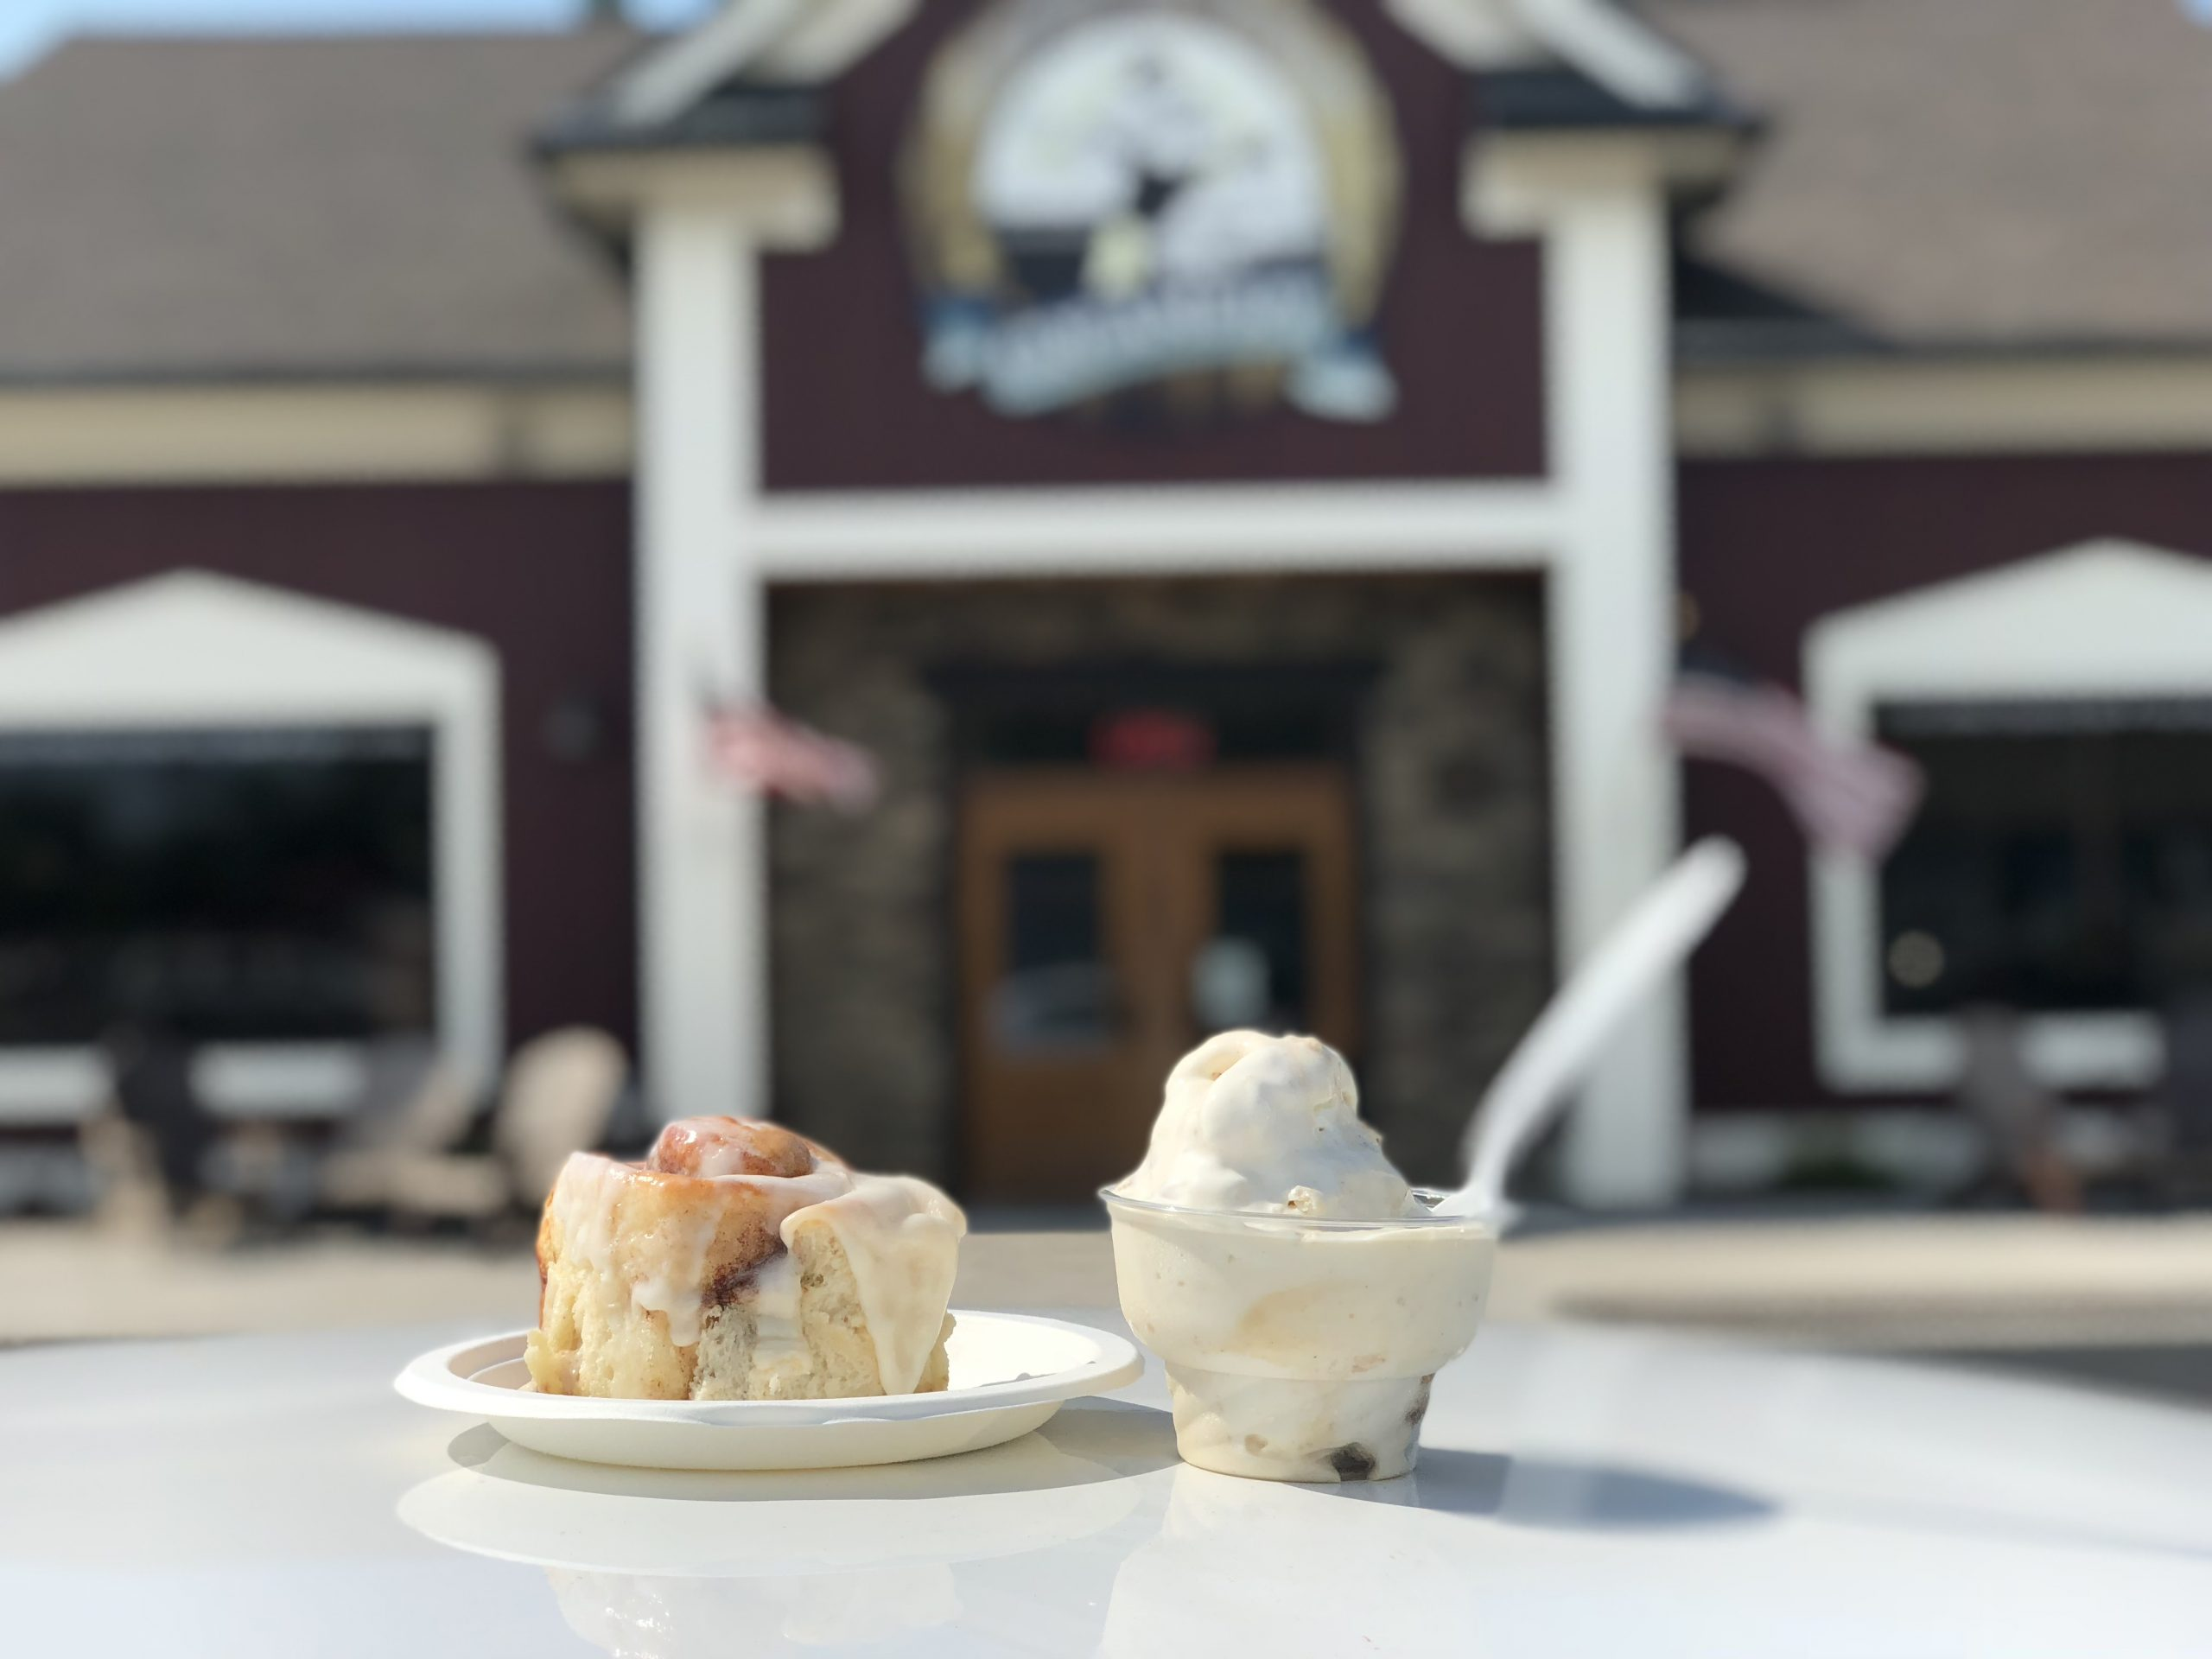 FLVC, Cheshire Farms Team Up for Ice Cream Flavor